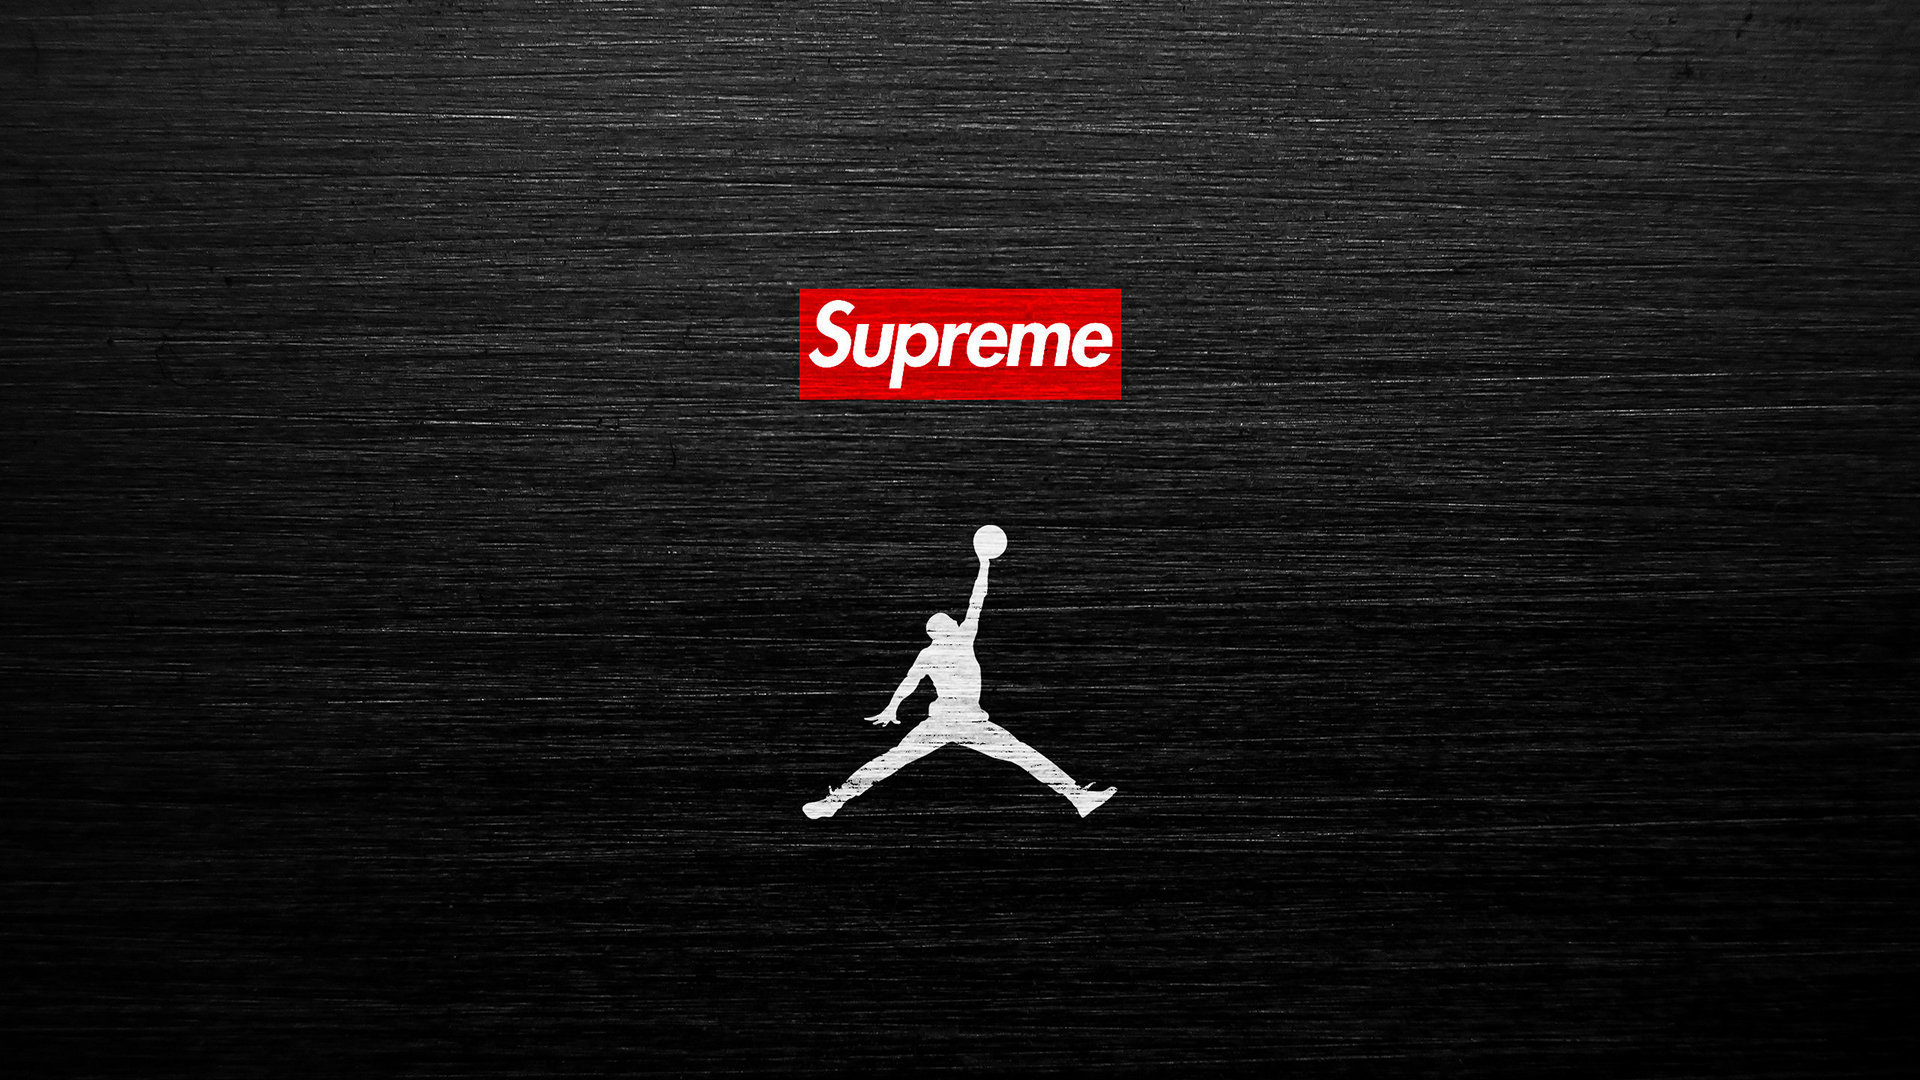 air jordan logo desktop wallpaper